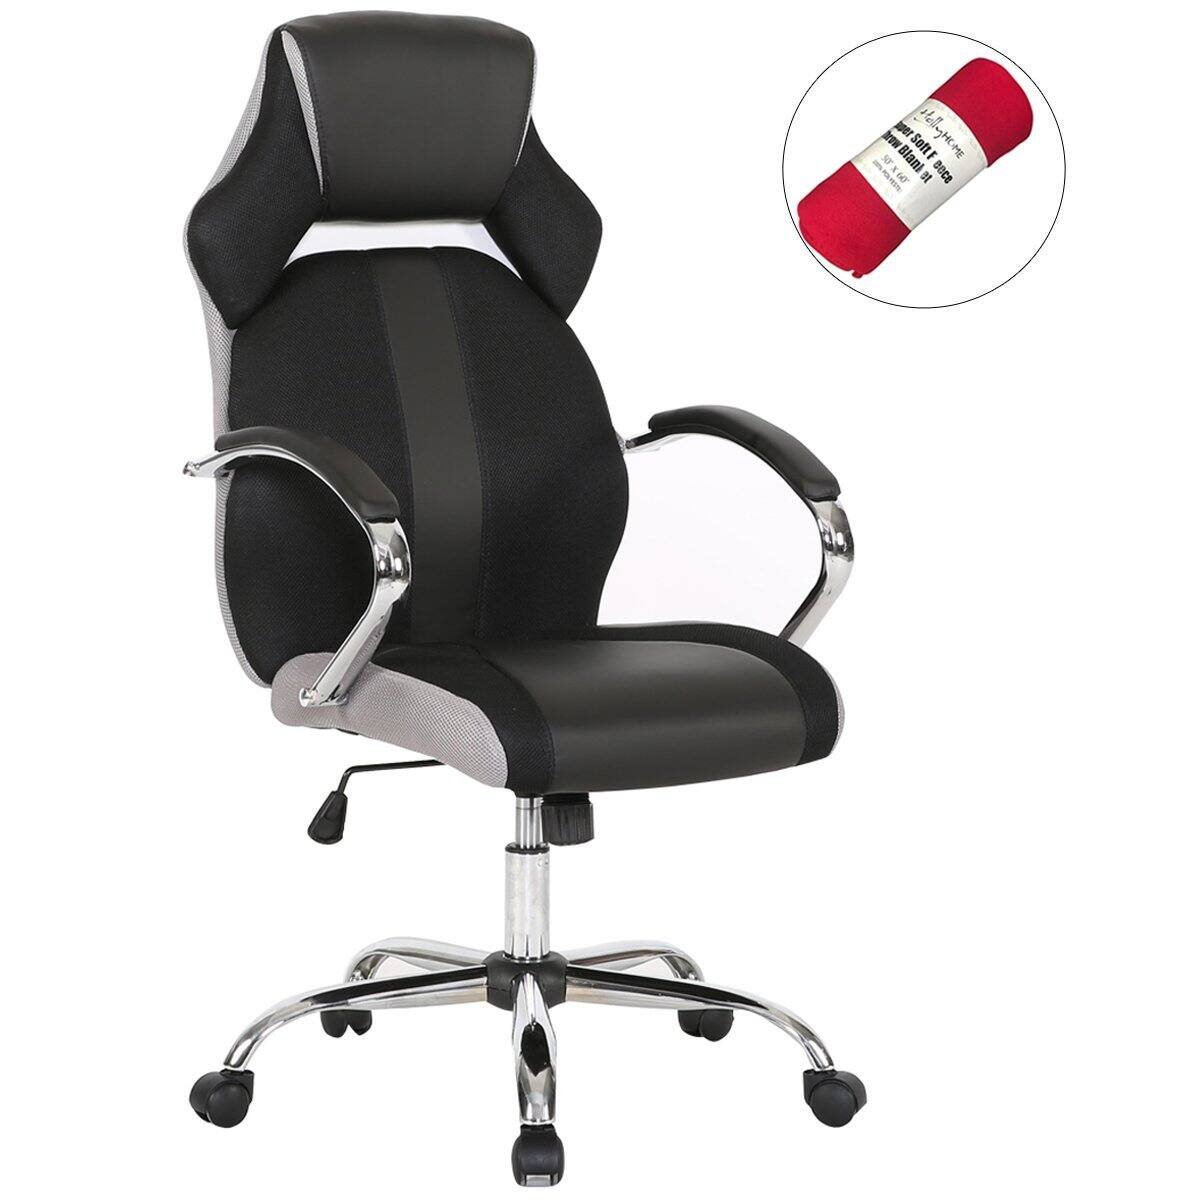 $79.73AC HollyHOME High Back Mesh and PU Leather Office Executive Chair, Black and Grey @ AMAZON